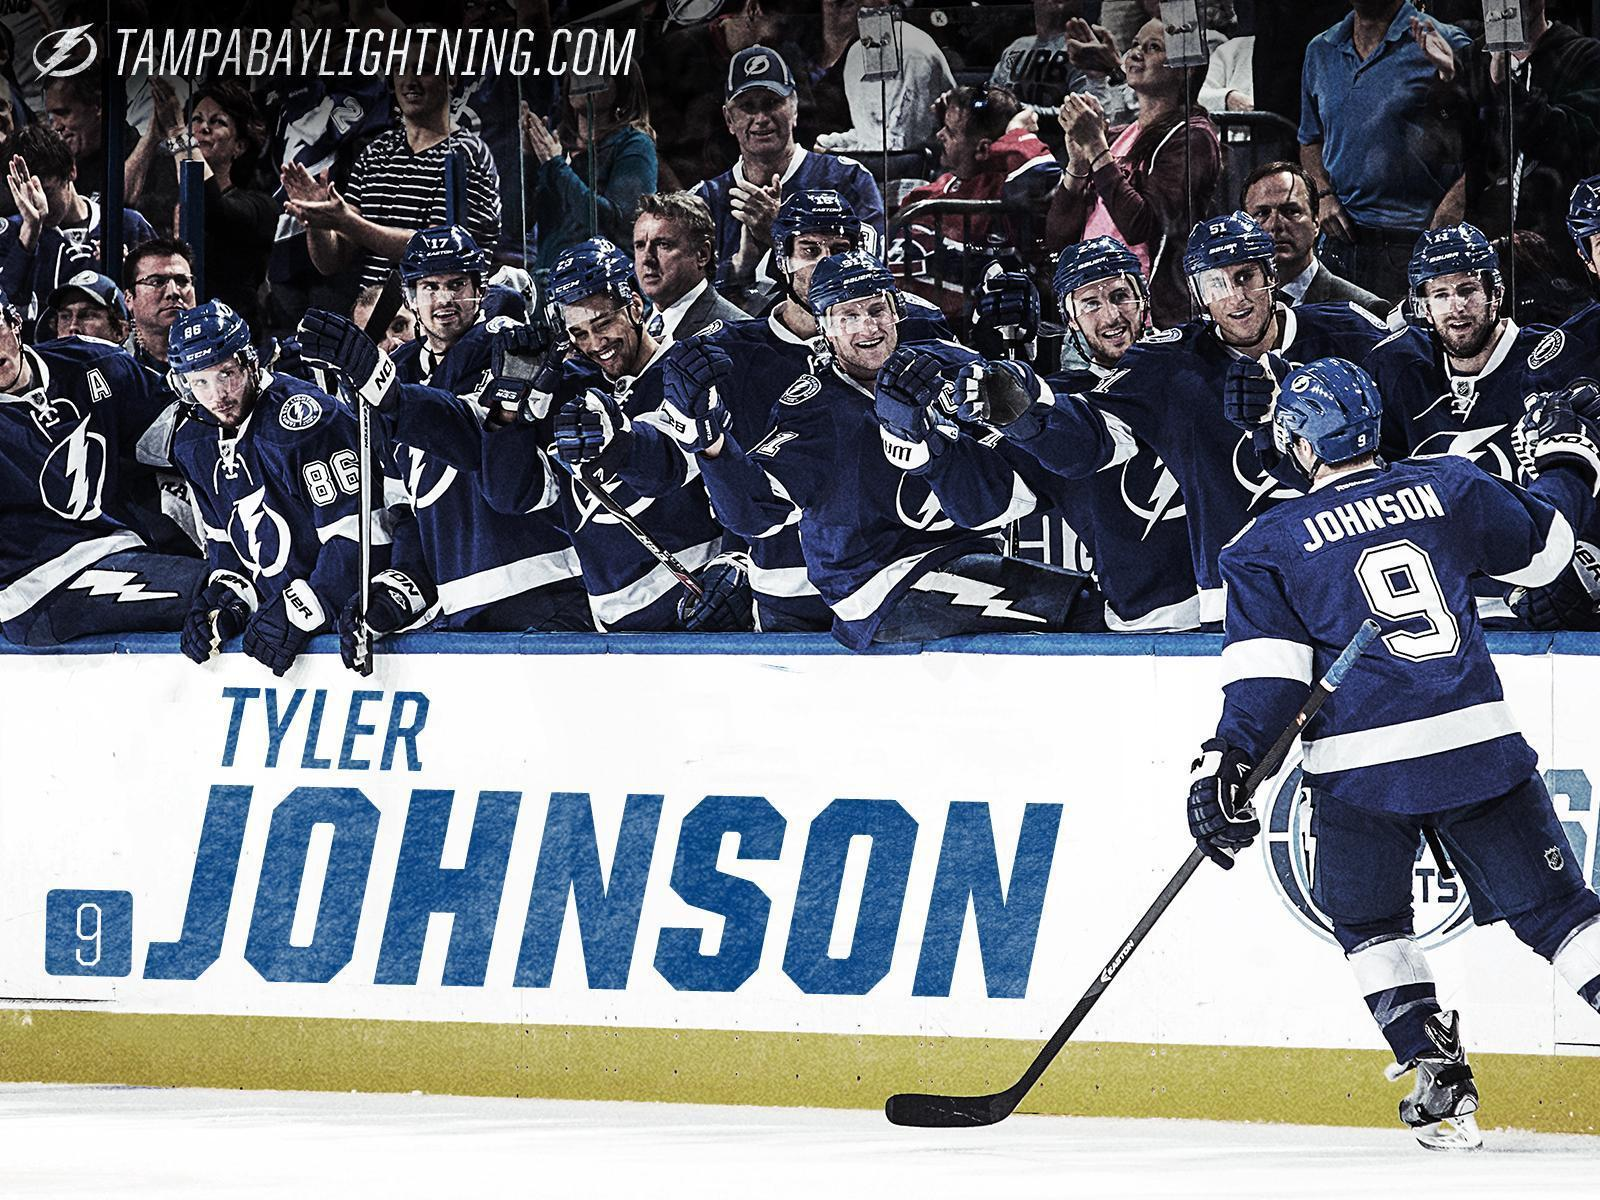 Tampa Bay Lightning Wallpaper Downloads - Wallpaper Downloads